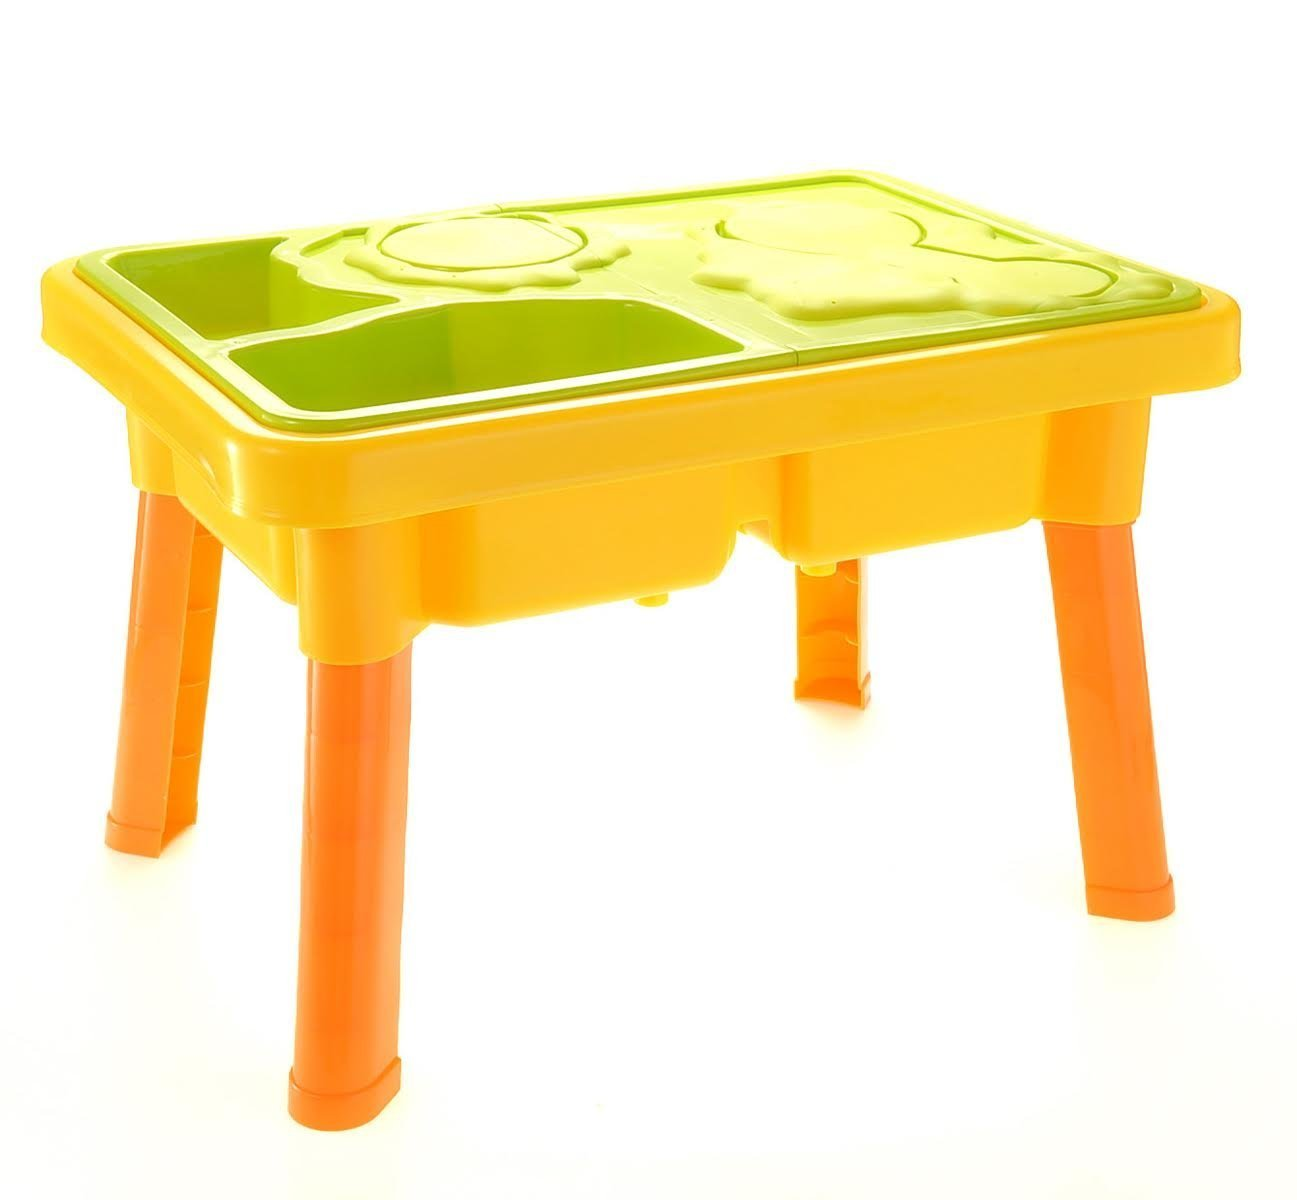 CHIMAERA Multi-Play 2-in-1 Sandbox / Sand and Water Table with Beach Playset by CHIMAERA (Image #3)